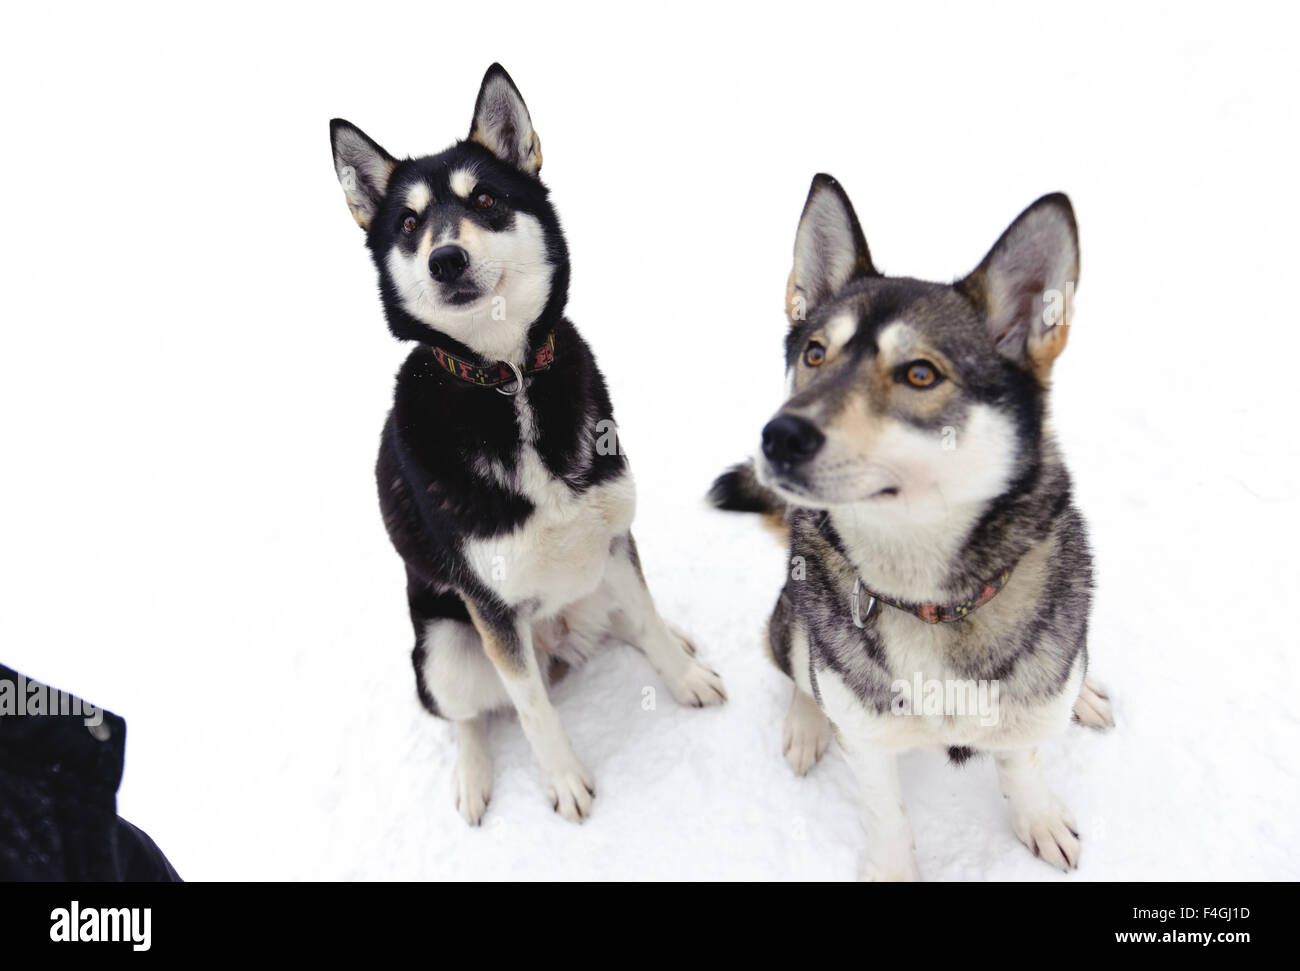 Husky sitting on snow in winter - Stock Image